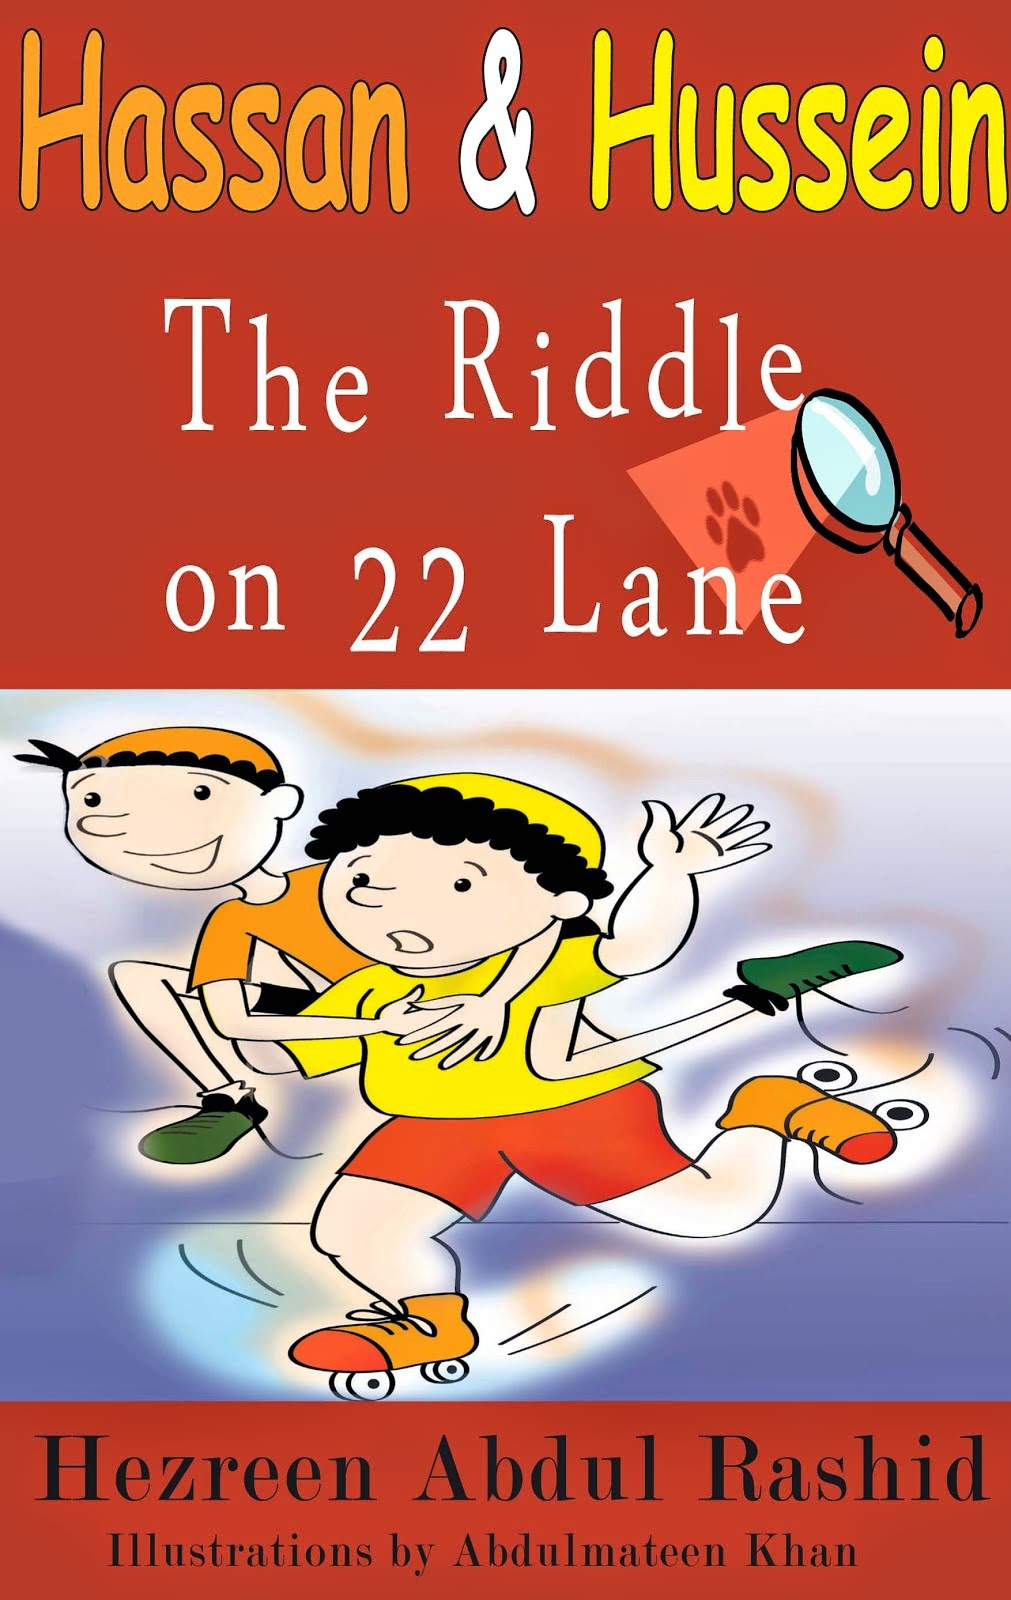 The Riddle on 22 Lane